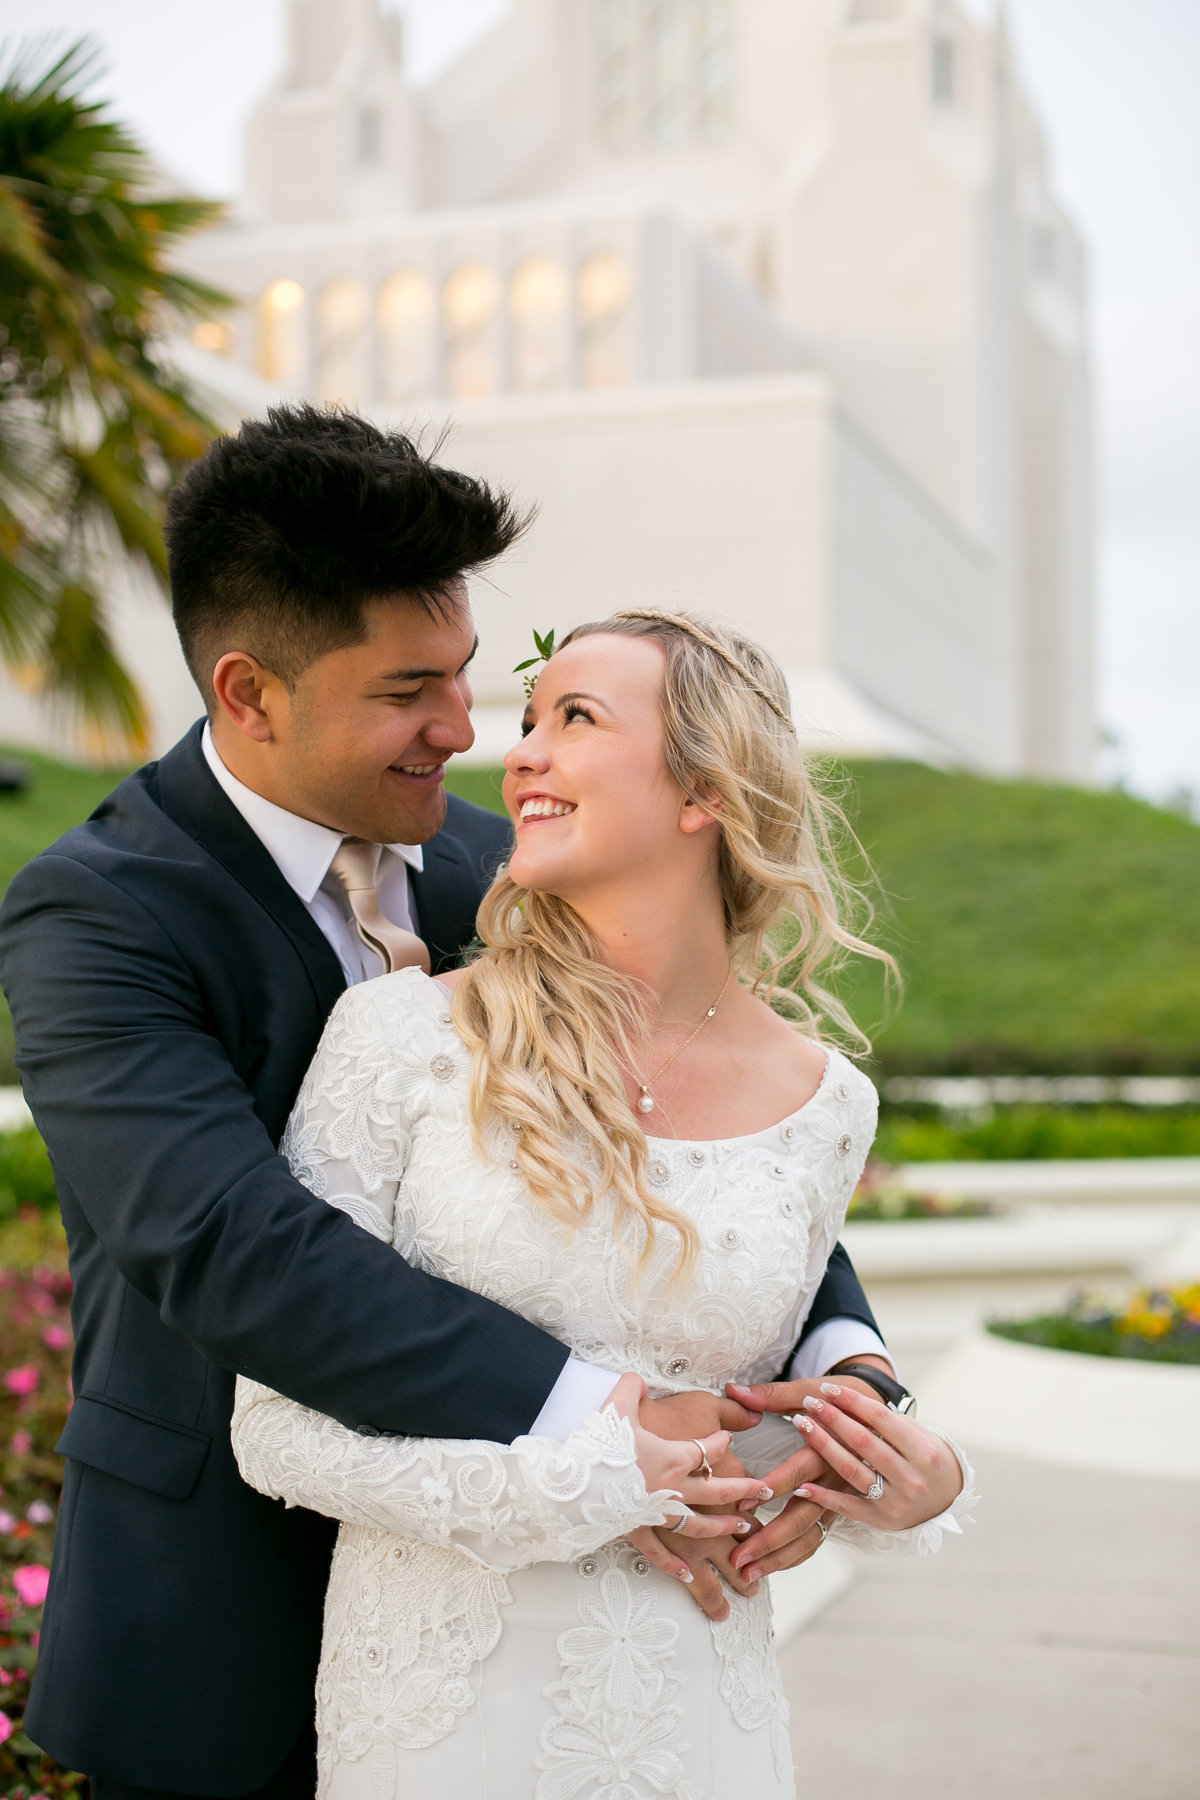 Bride and groom at San Diego LDS temple wedding